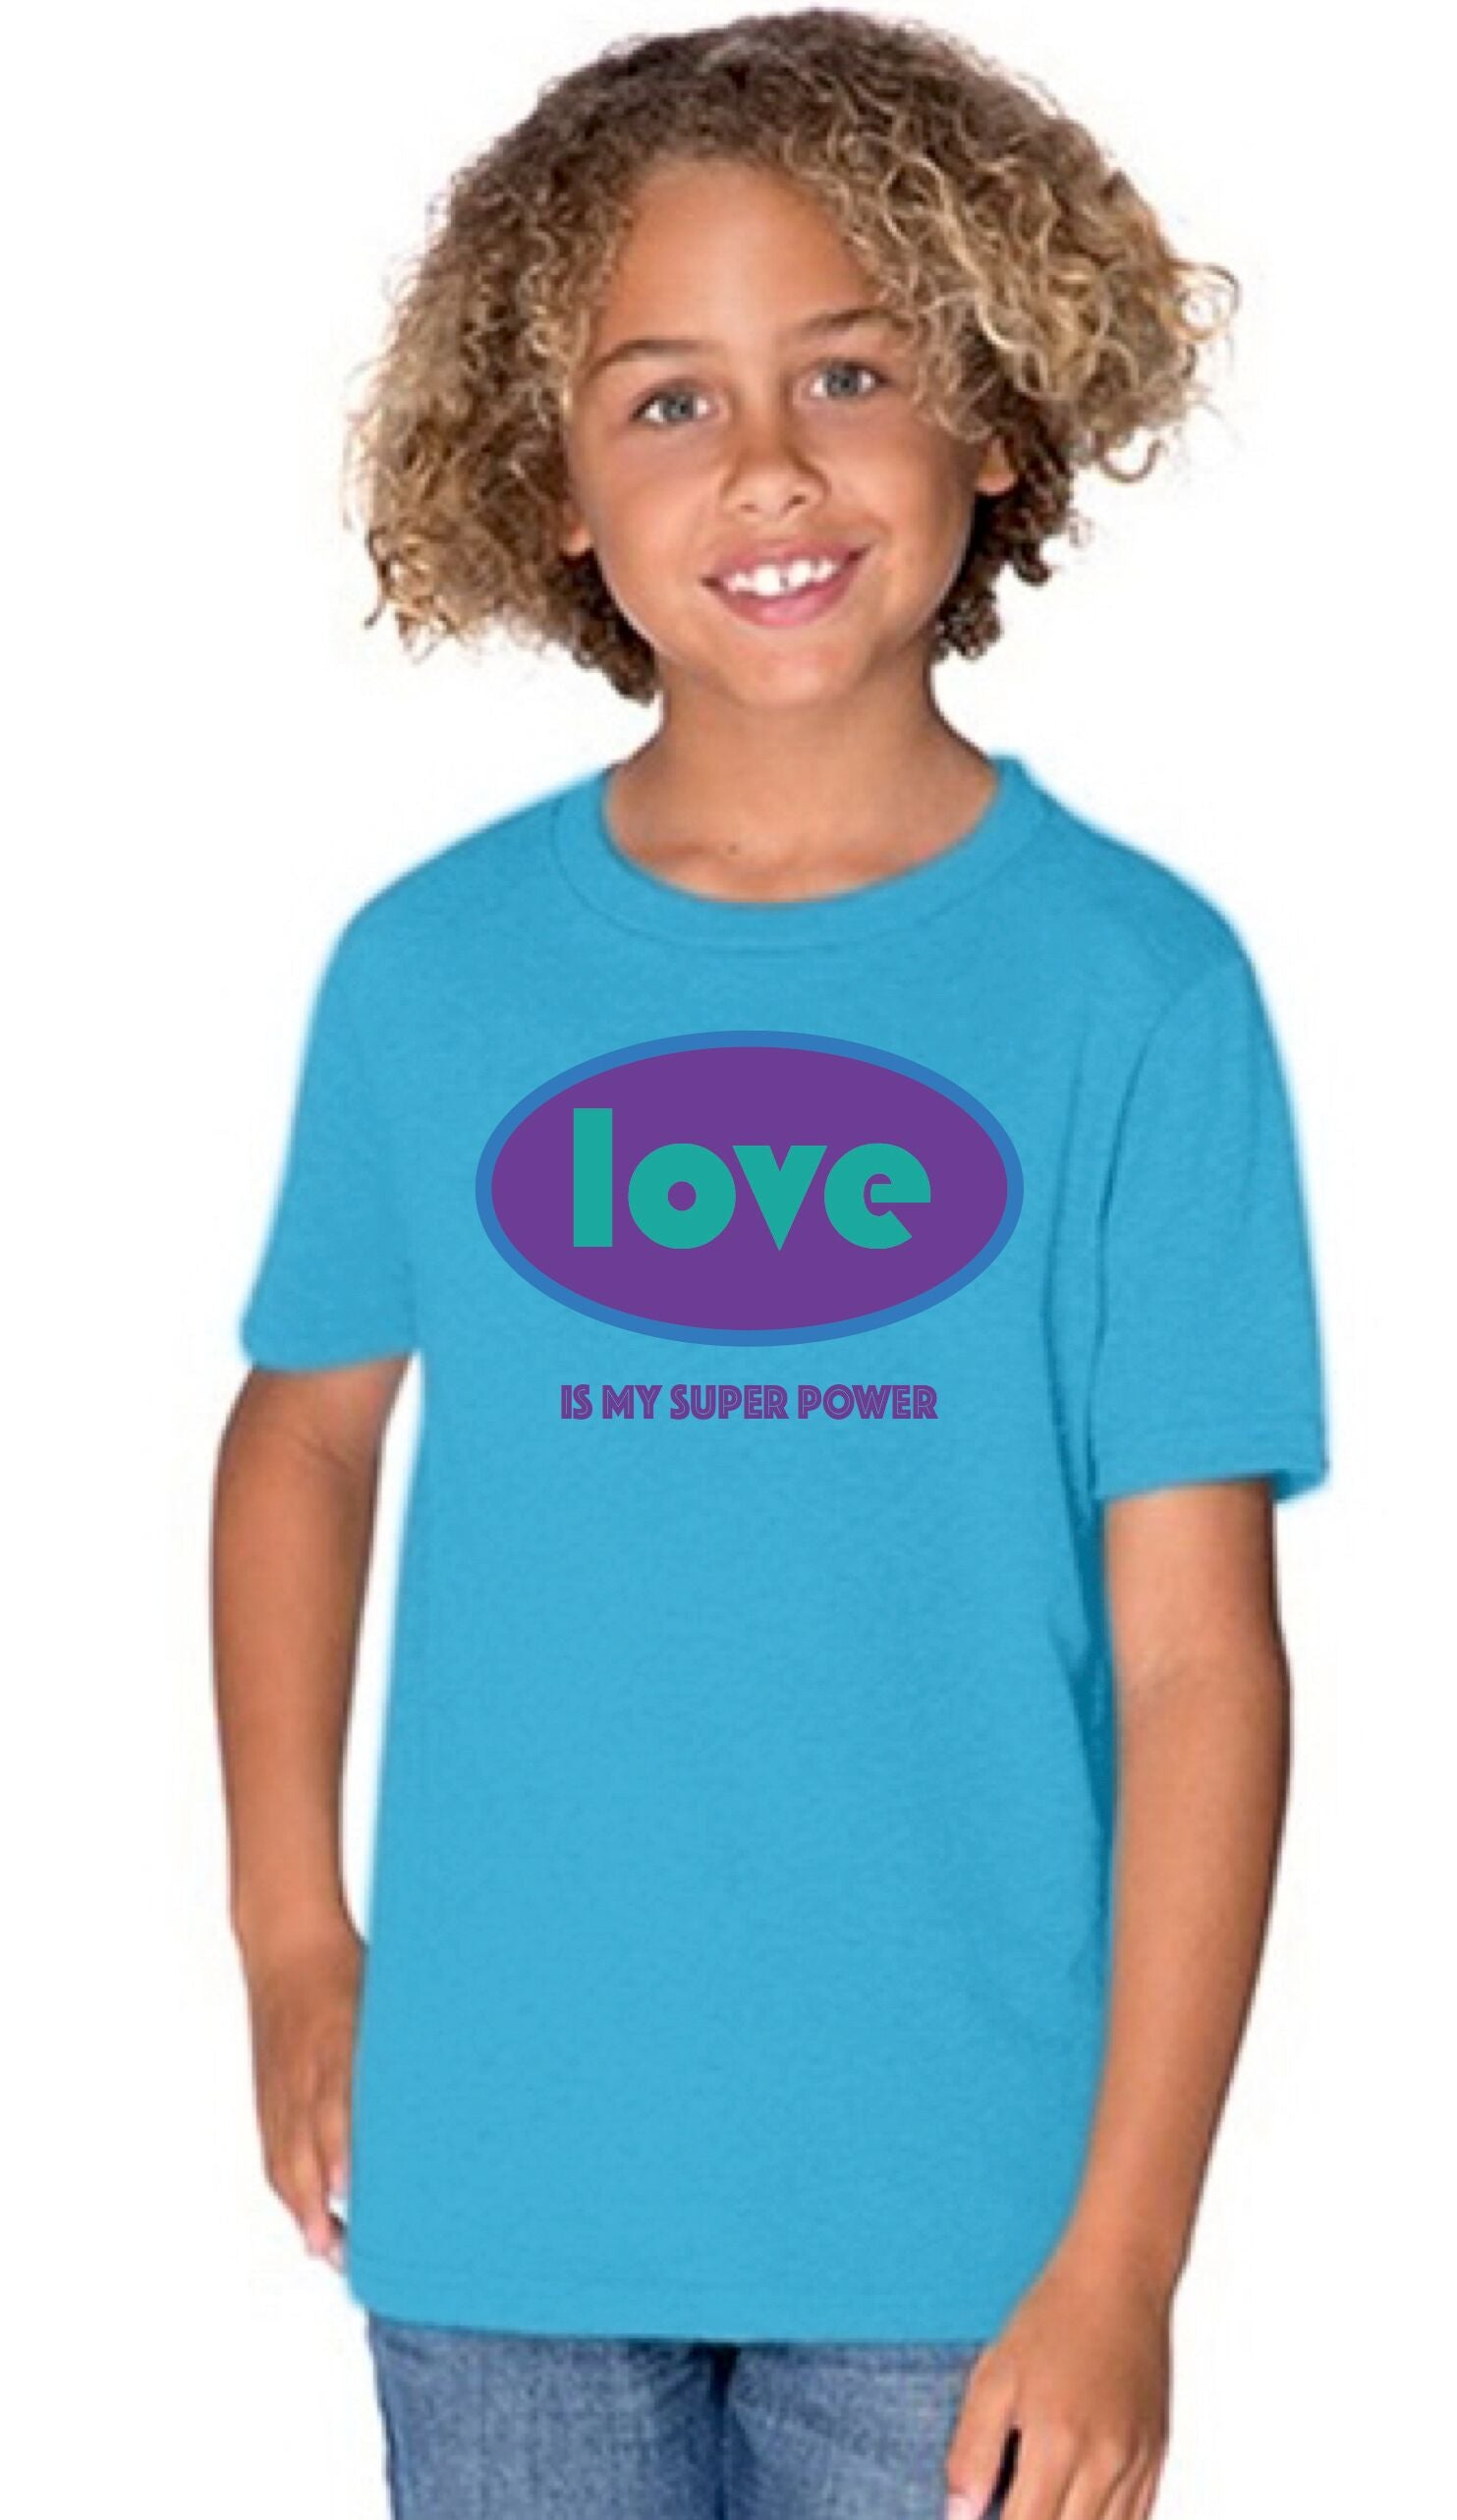 Love is My Superpower Kids Tee (Boys, Blue or Ash grey)